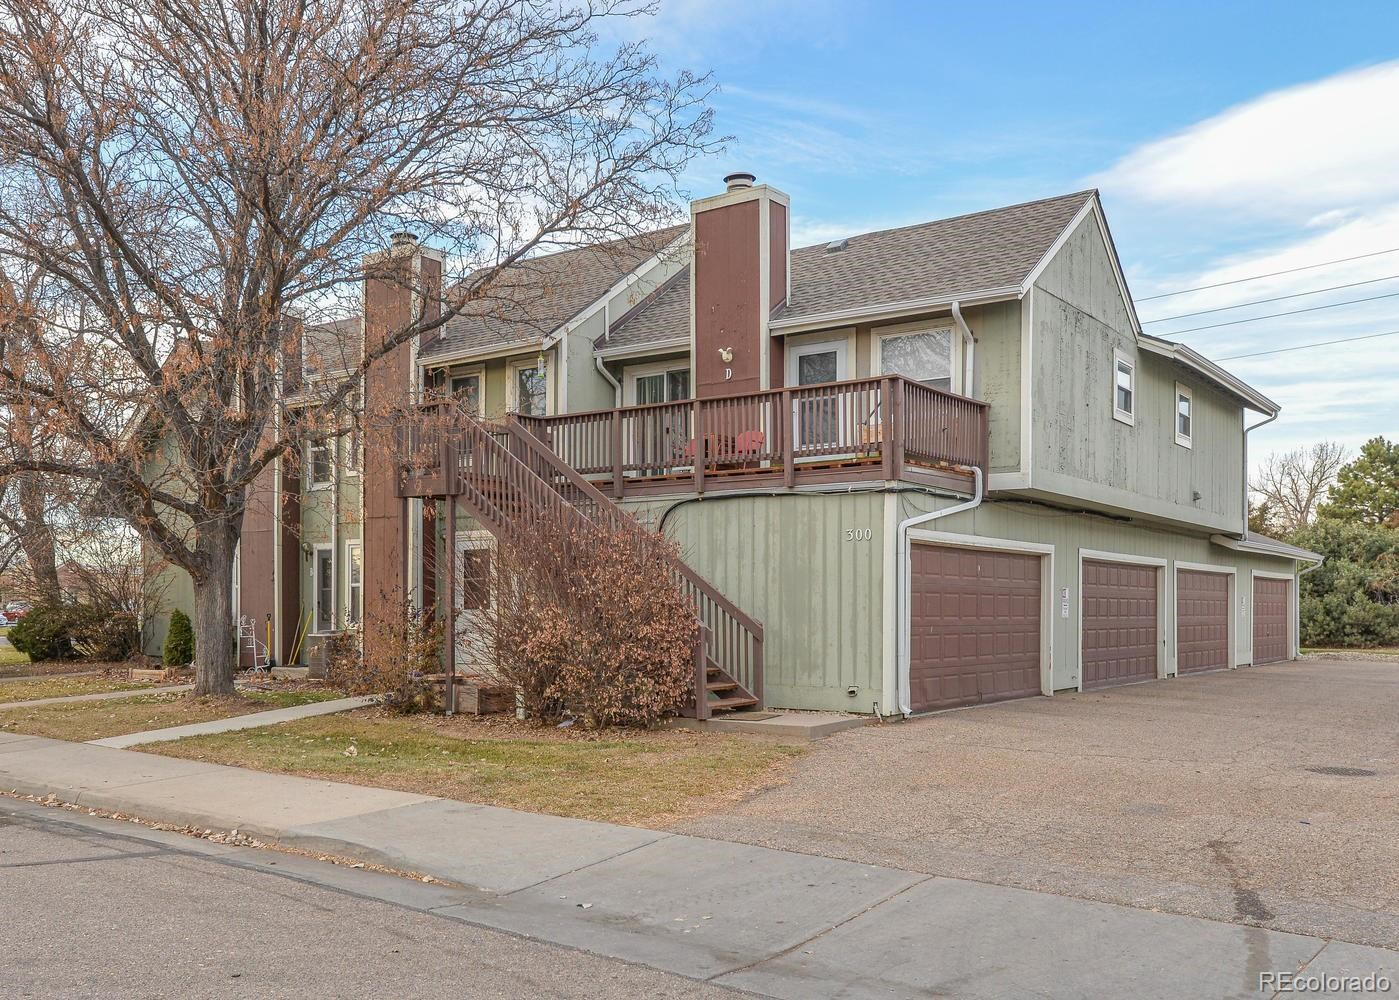 MLS# 7503393 - 28 - 300 Sundance Circle #A101, Fort Collins, CO 80524